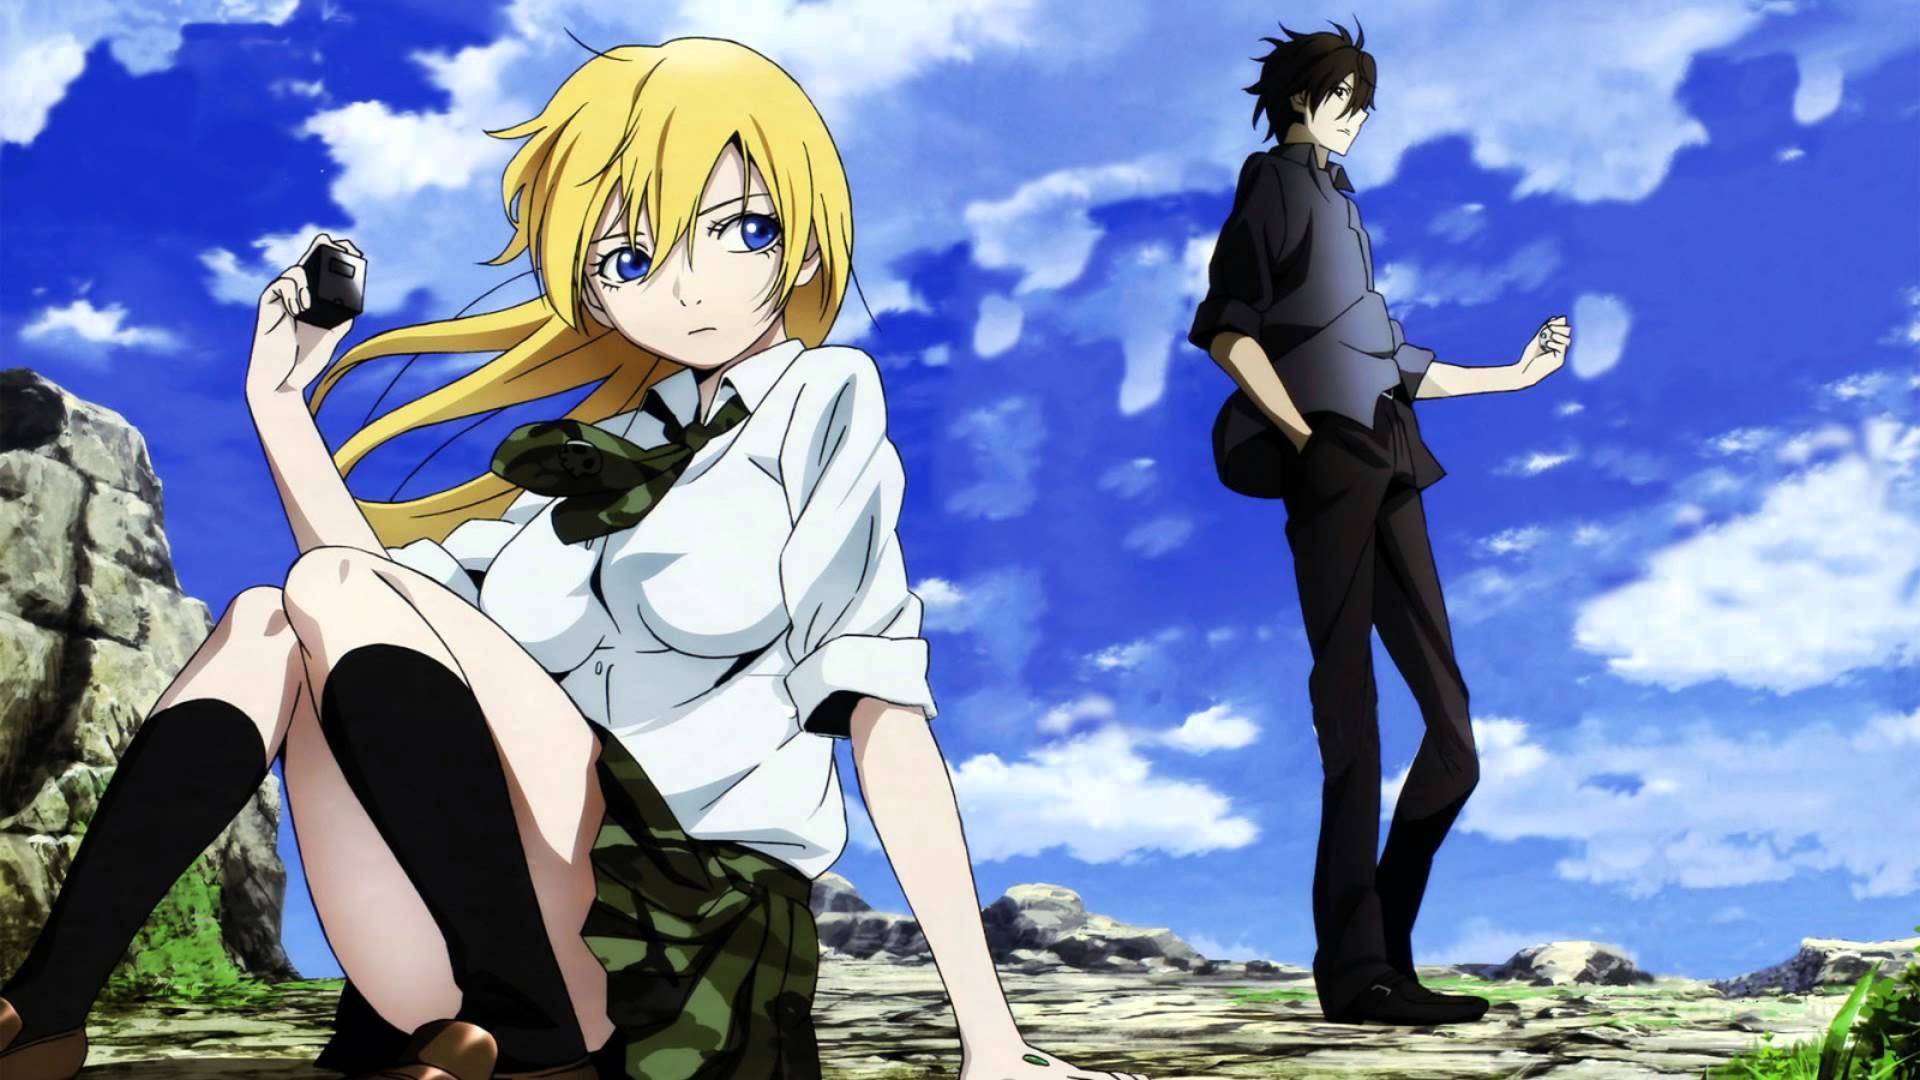 Music Song Btooom